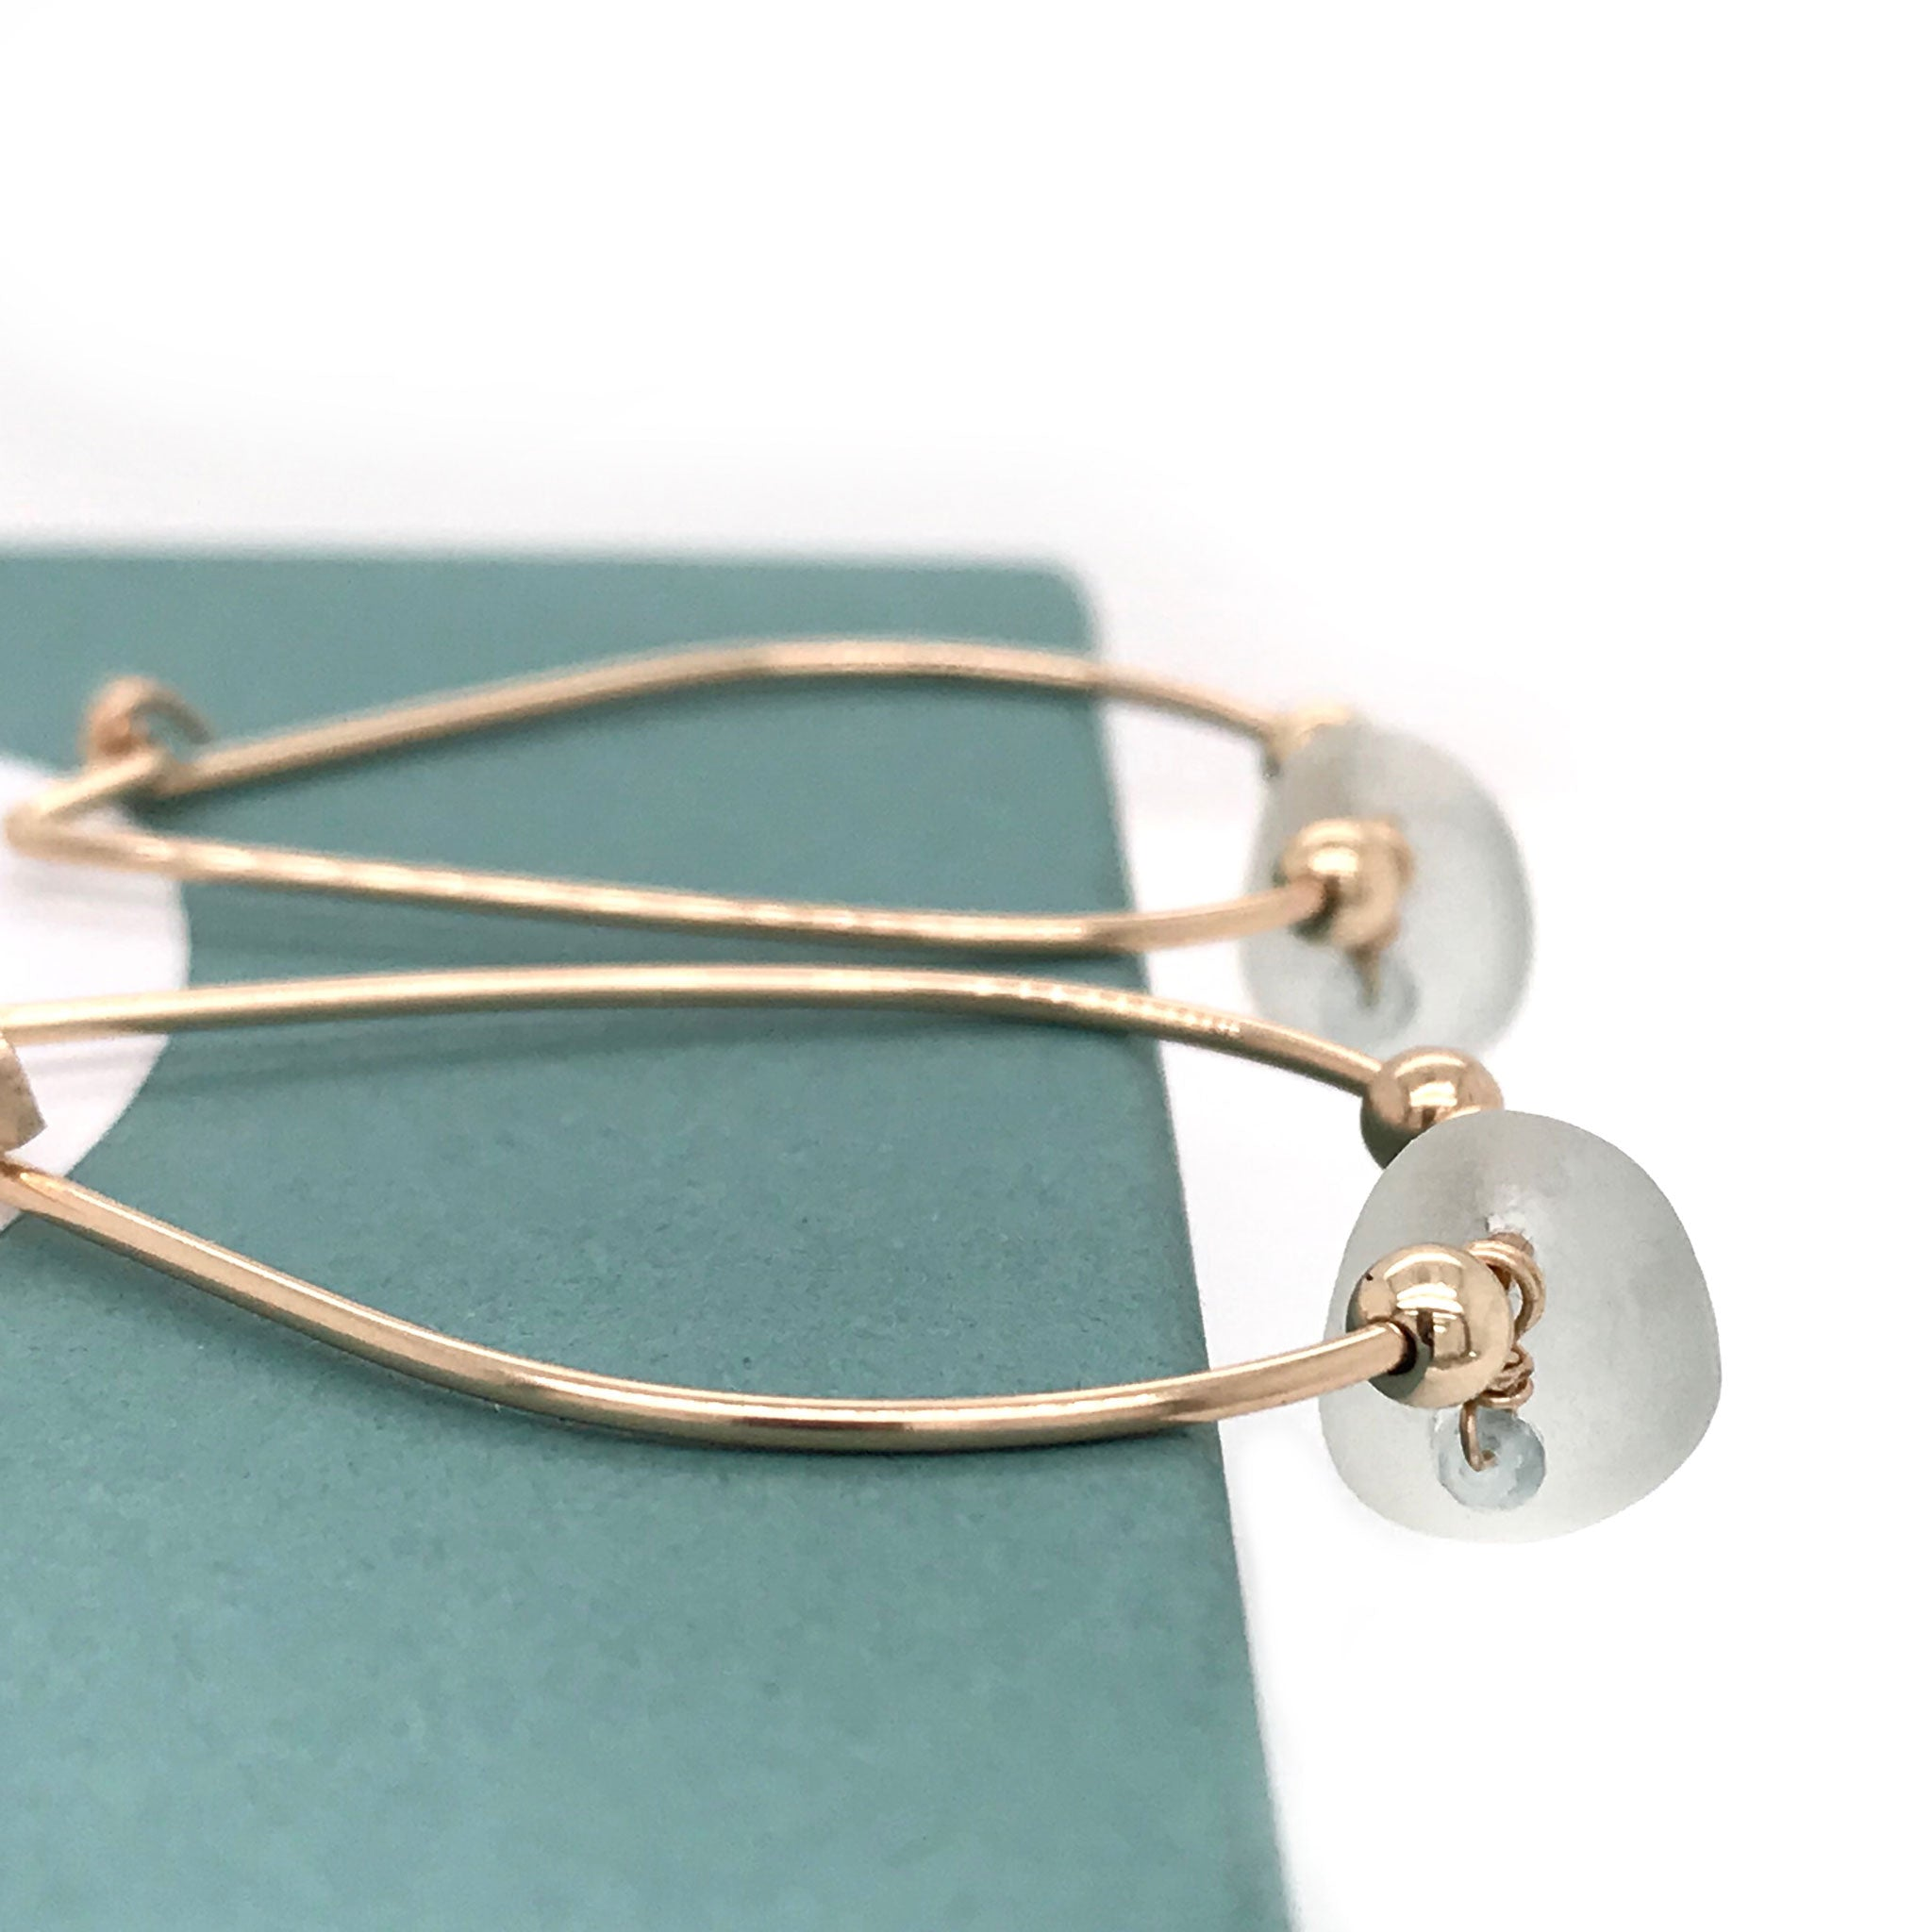 hoop earrings with clear seaglass kriket broadhurst seaglass jewellery